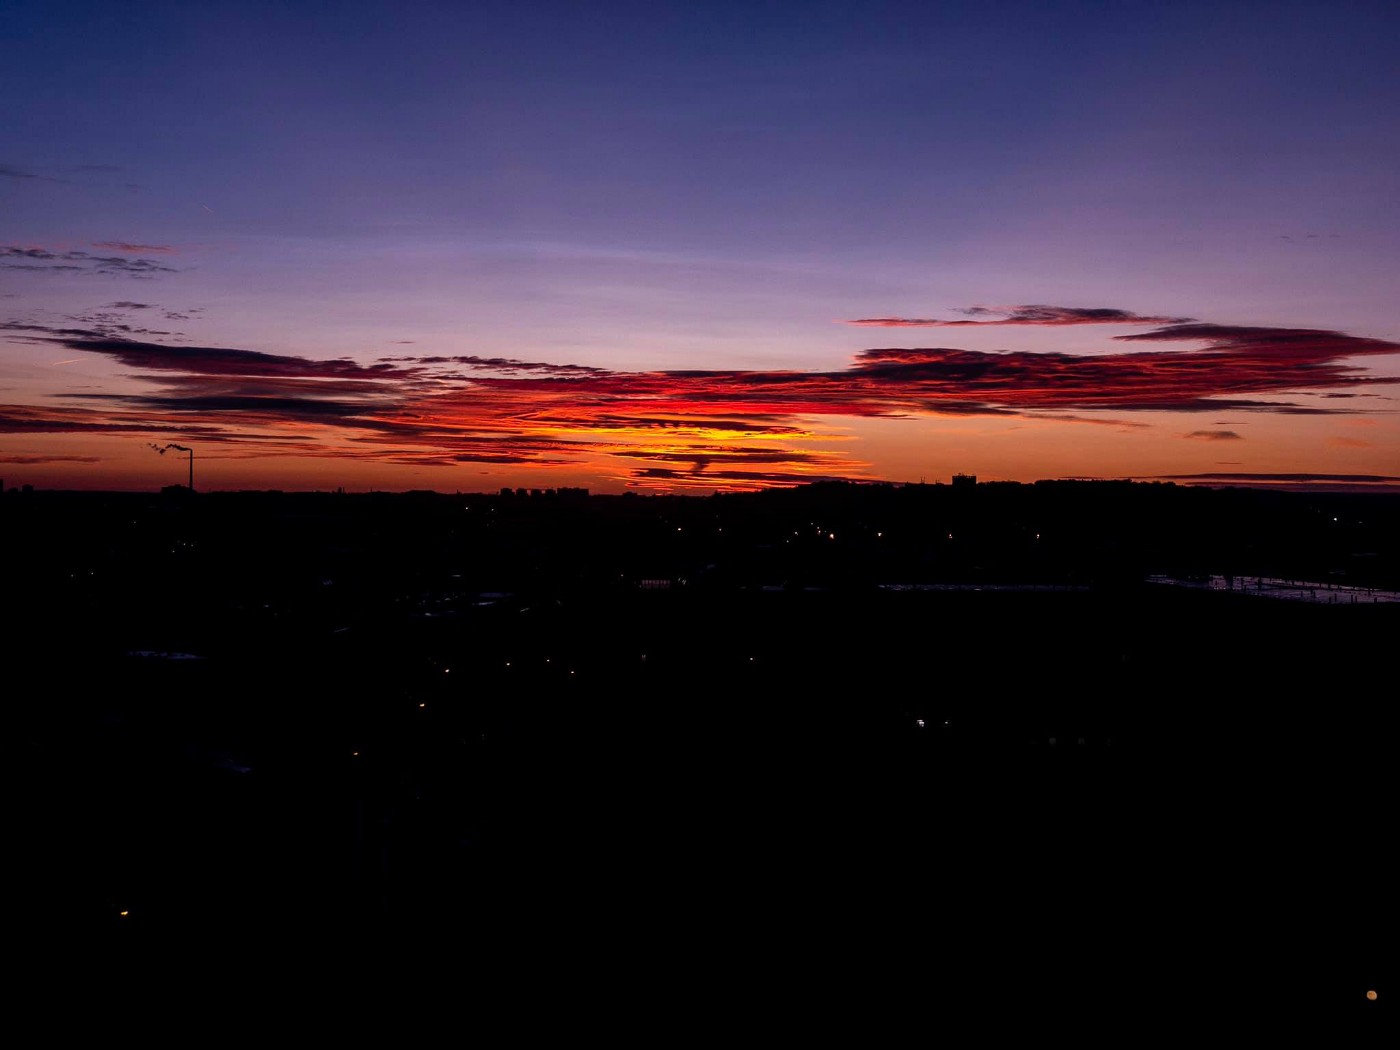 Sunrise over Prague, Czech Republic. Dark landscape with the first hints of orange and red layering up to streaks of cloud.